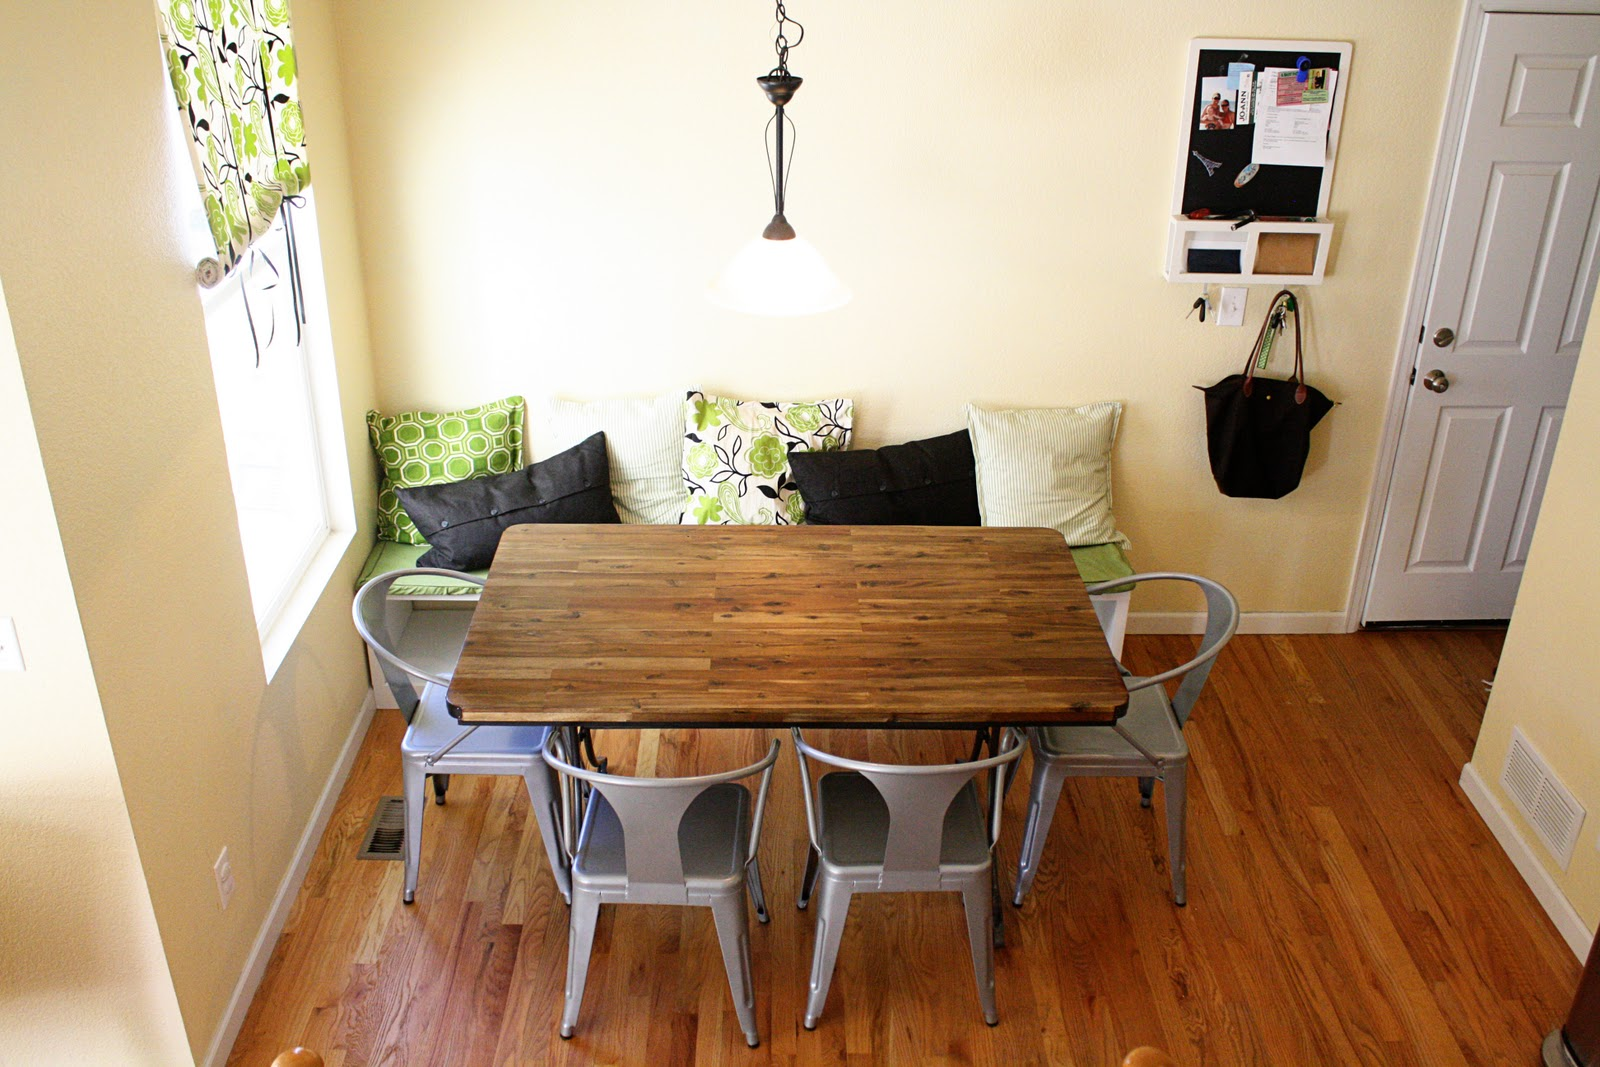 Wood Breakfast Nook Furniture ~ Breakfast nook with banquette seating